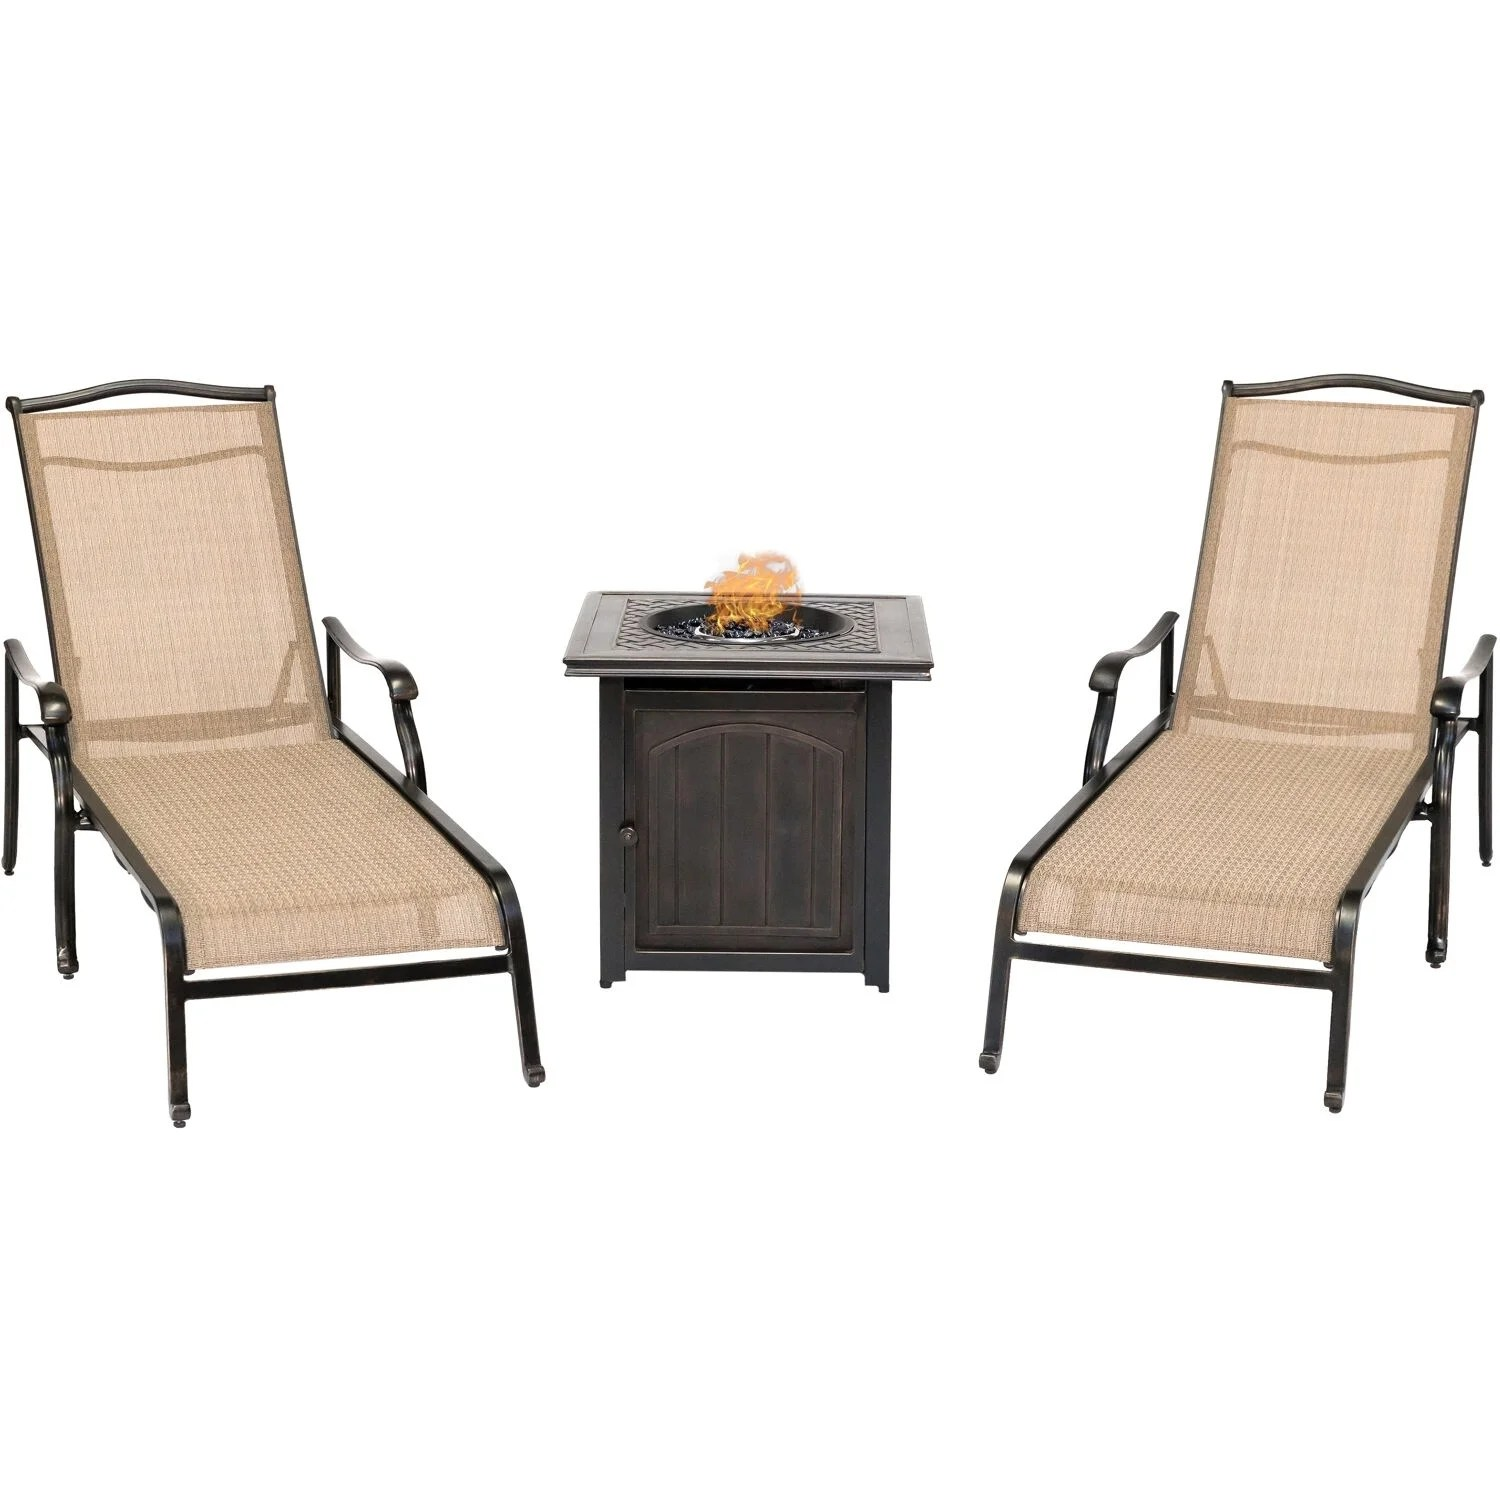 Table 2 Chaises Hanover Monaco 3 Piece Fire Pit Lounge Set With 2 Chaise Lounges And A 26 In Square Fire Pit Side Table